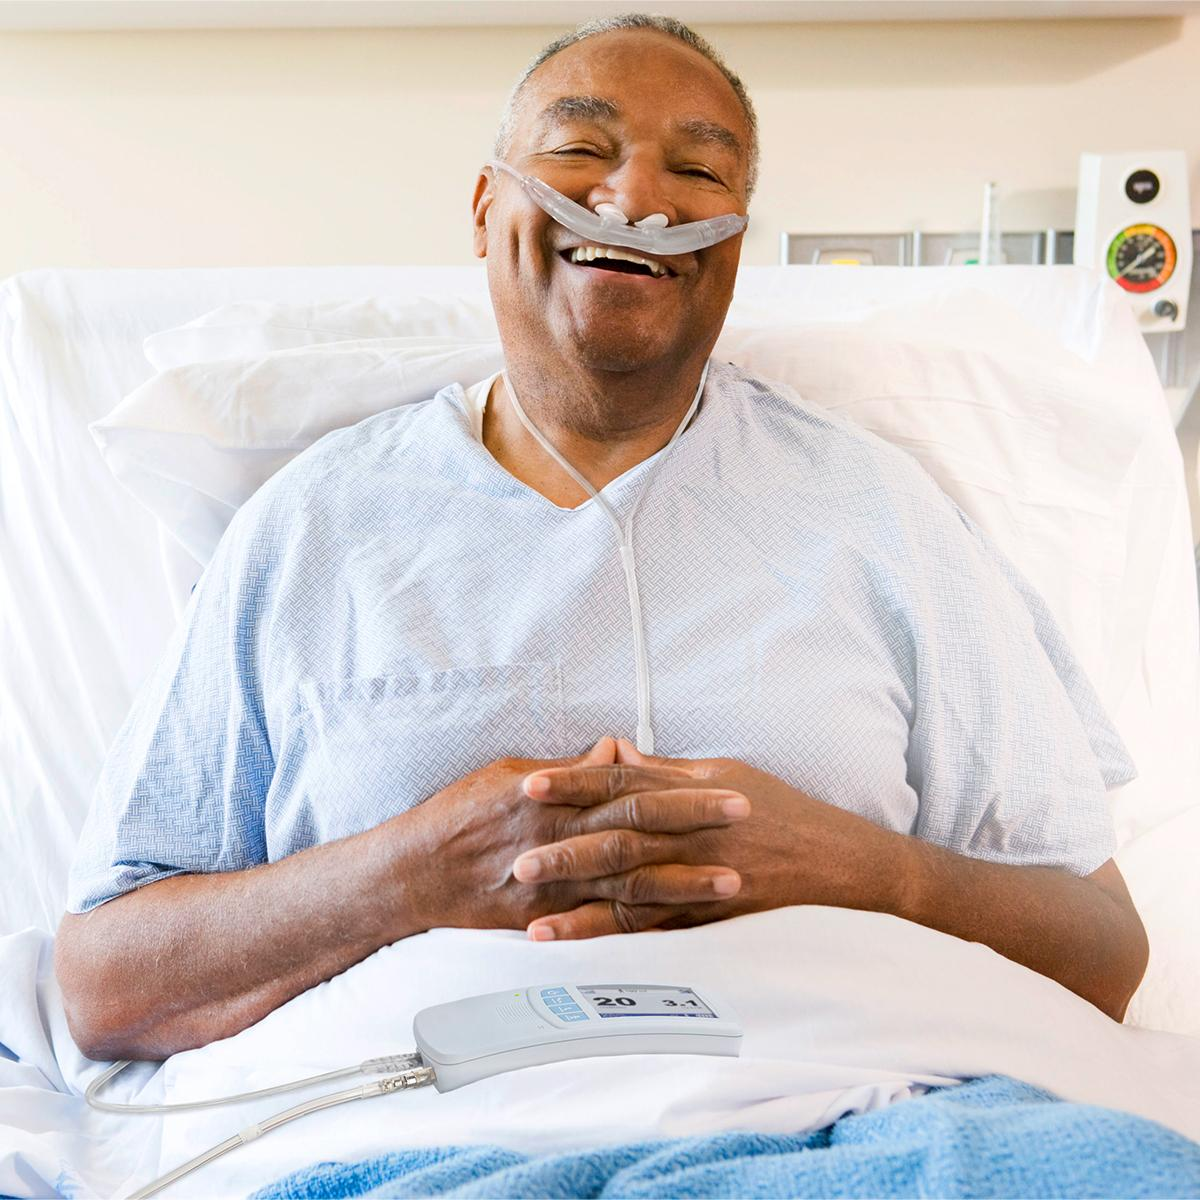 Smiling patient with Hillrom Life2000 mobile ventilator talking with doctor or respiratory therapist in hospital hallway.